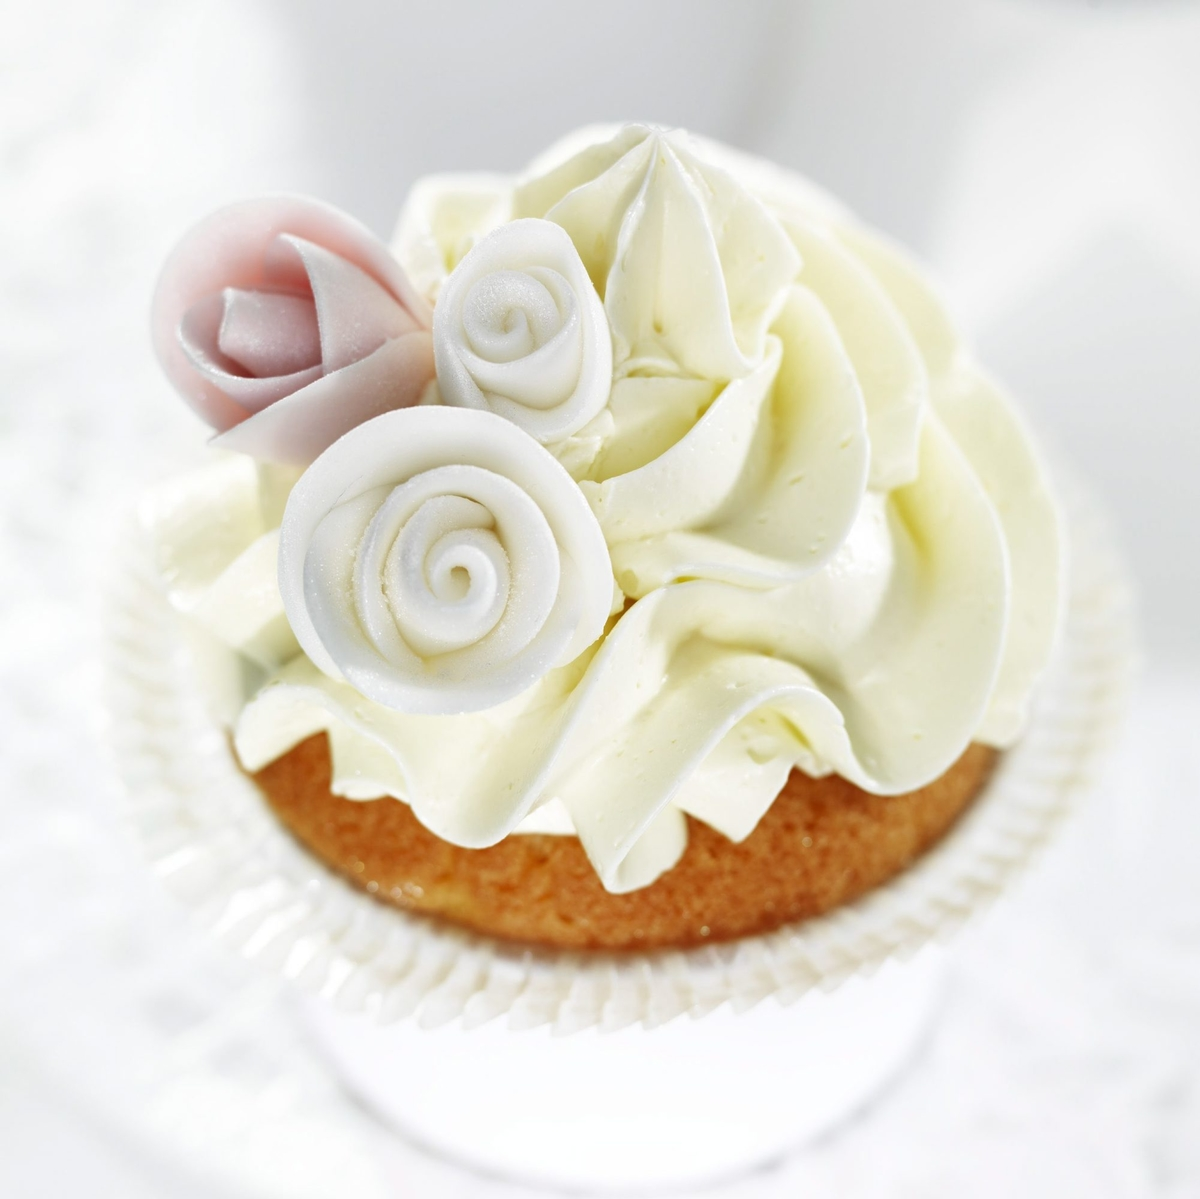 Luxurious rose cupcakes